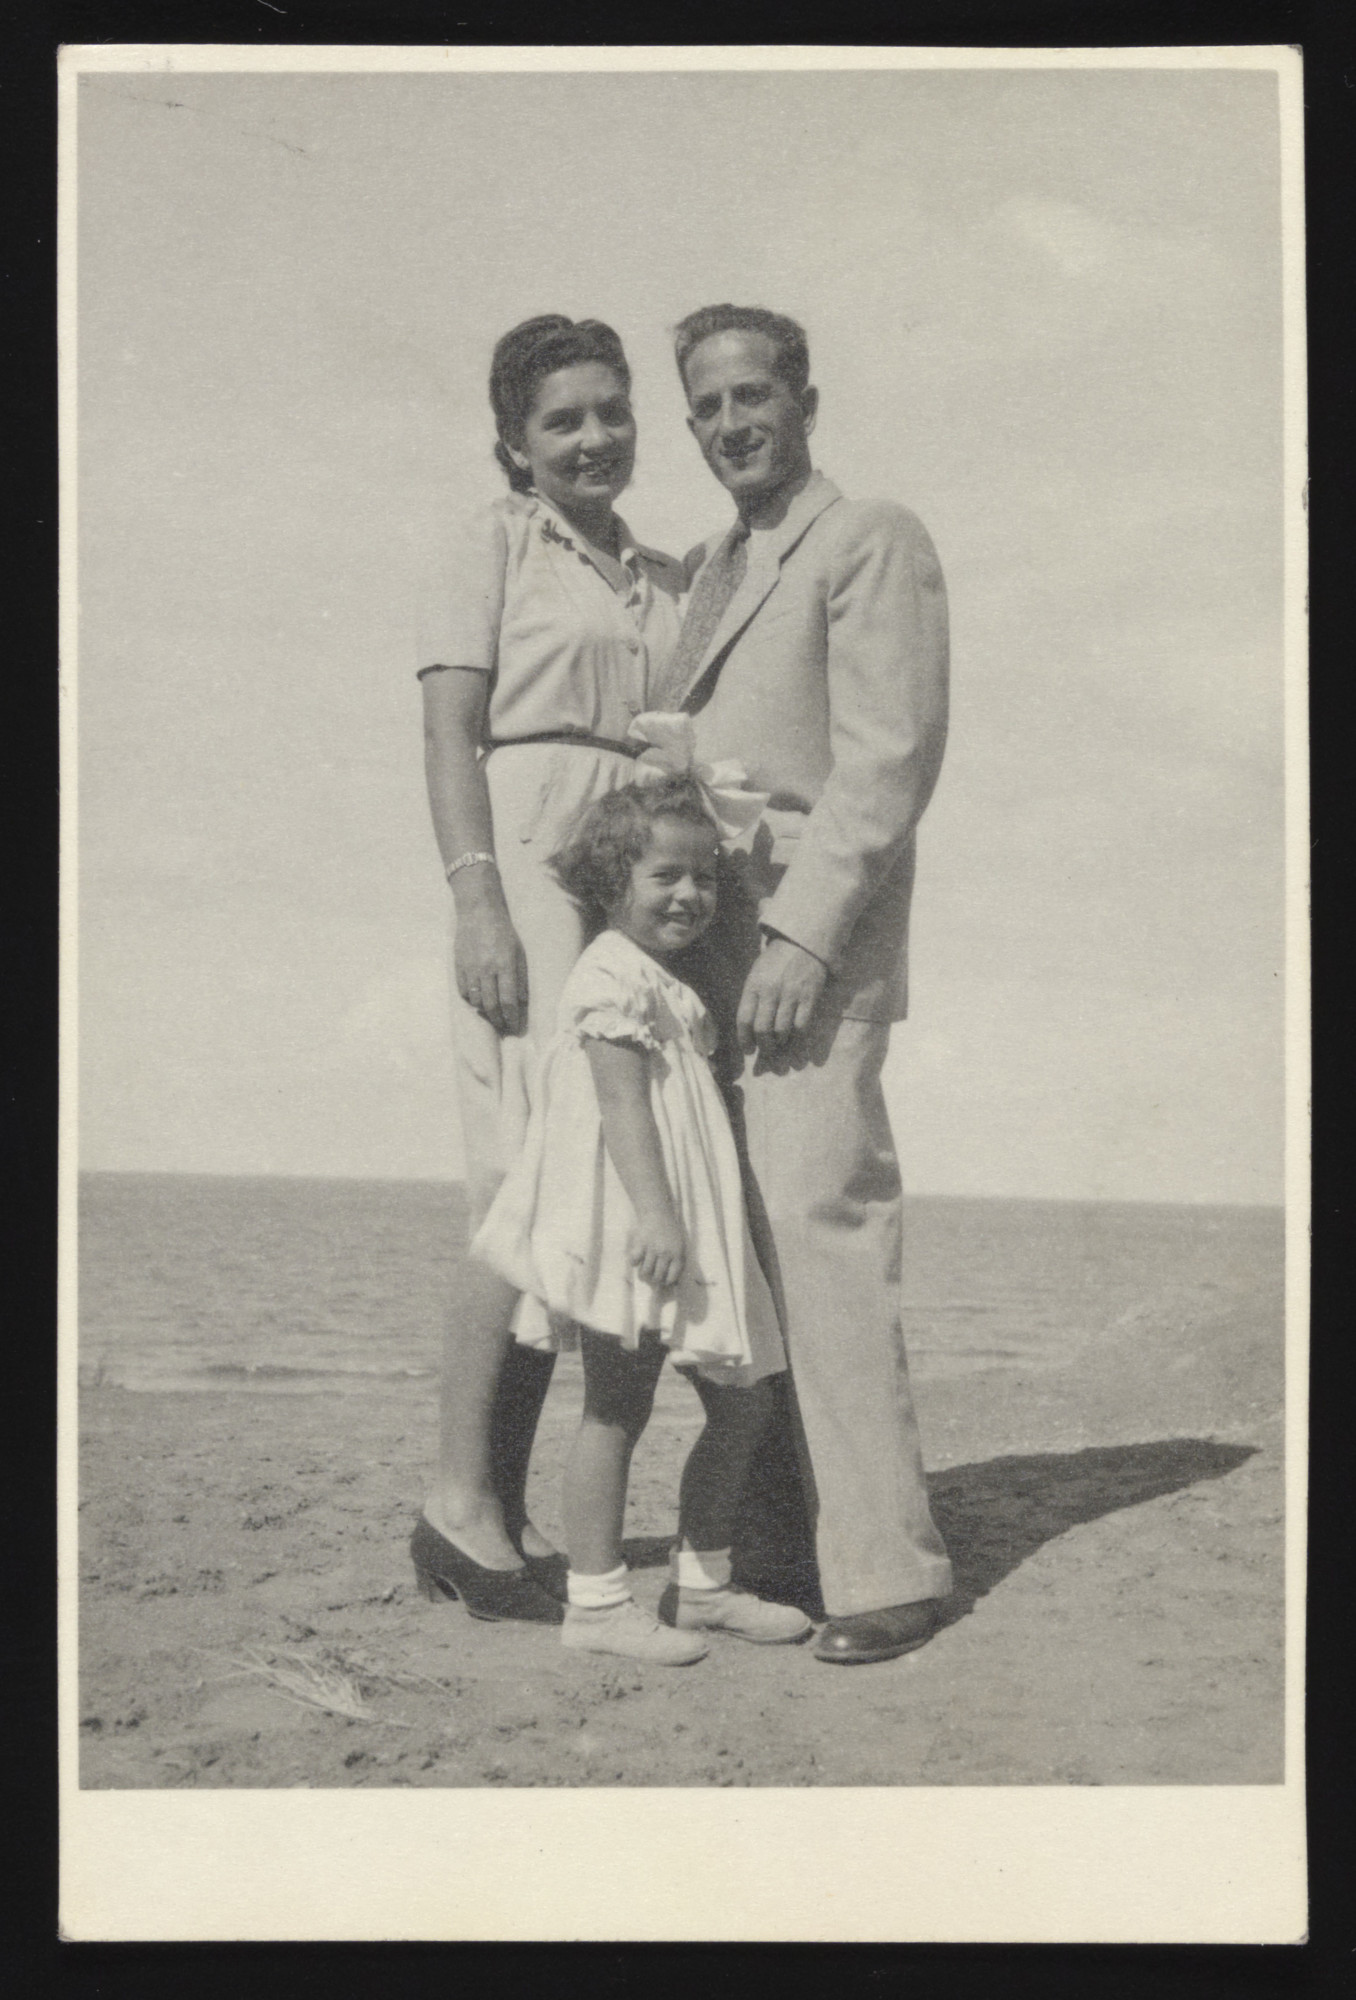 Samuel Weissman (Tamar's maternal uncle) and his family pose on a beach in Tel-Aviv.